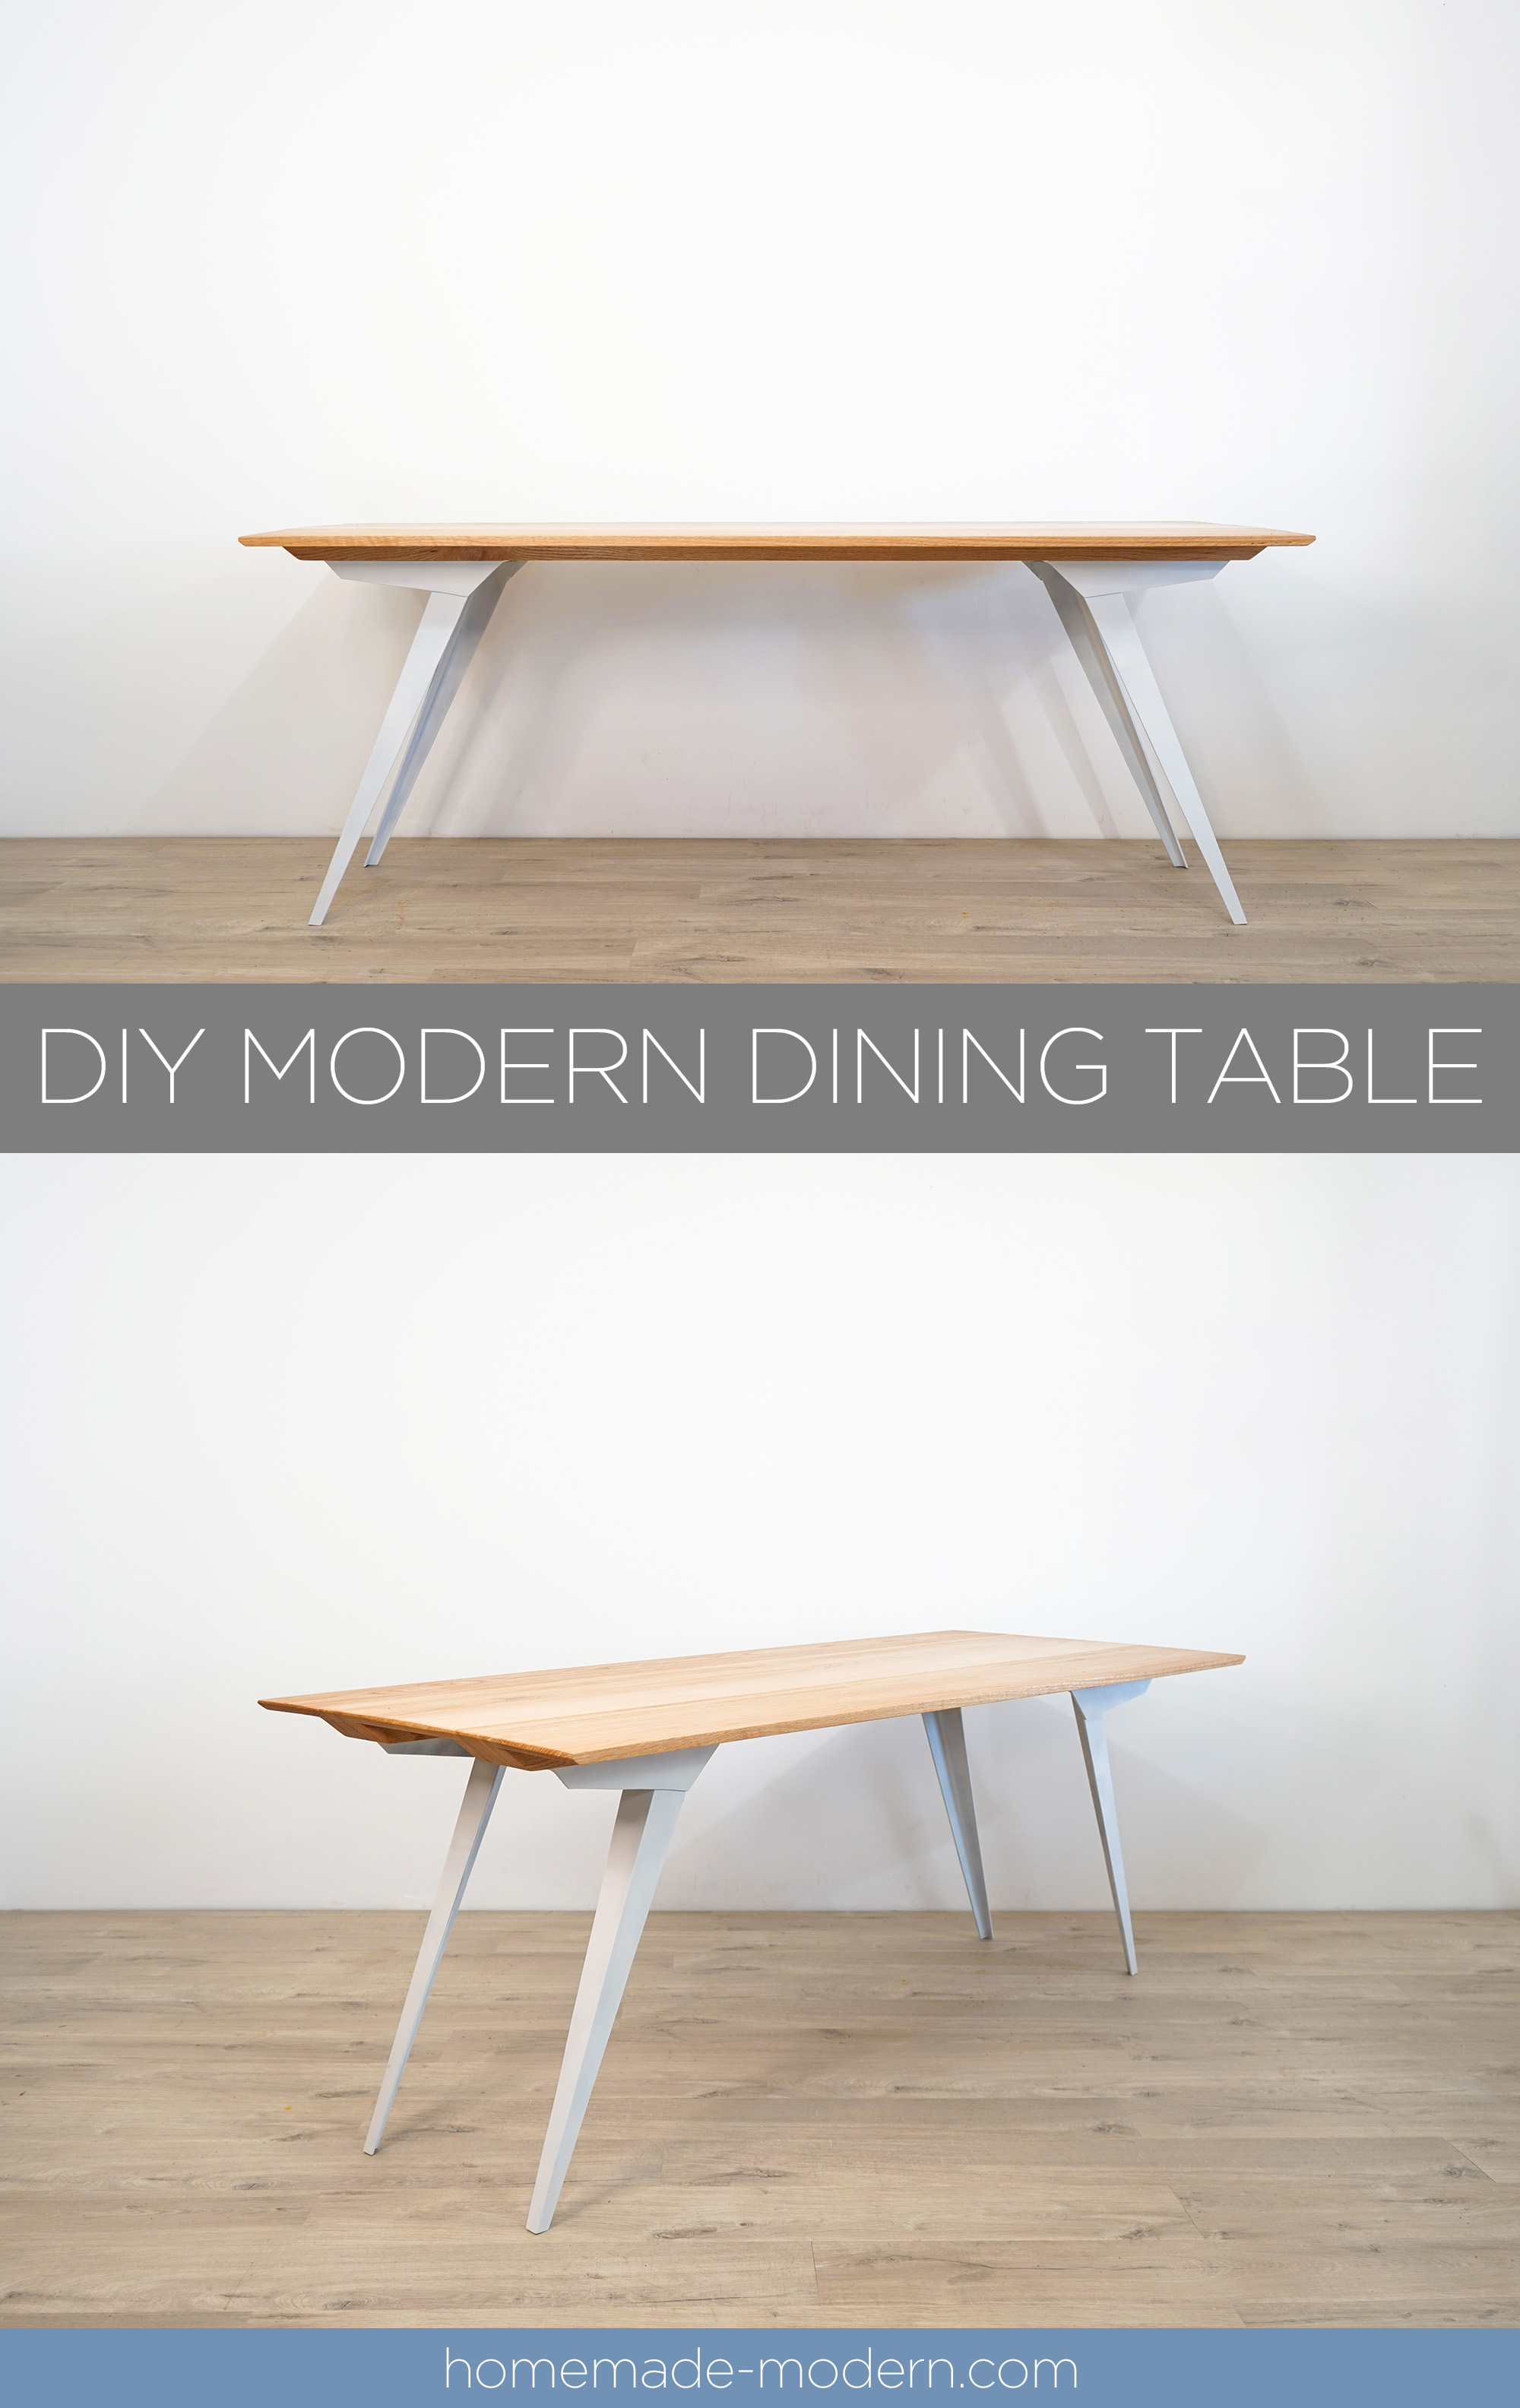 This Diy Modern Dining Table Features Custom Steel Legs That Made Out Of 3